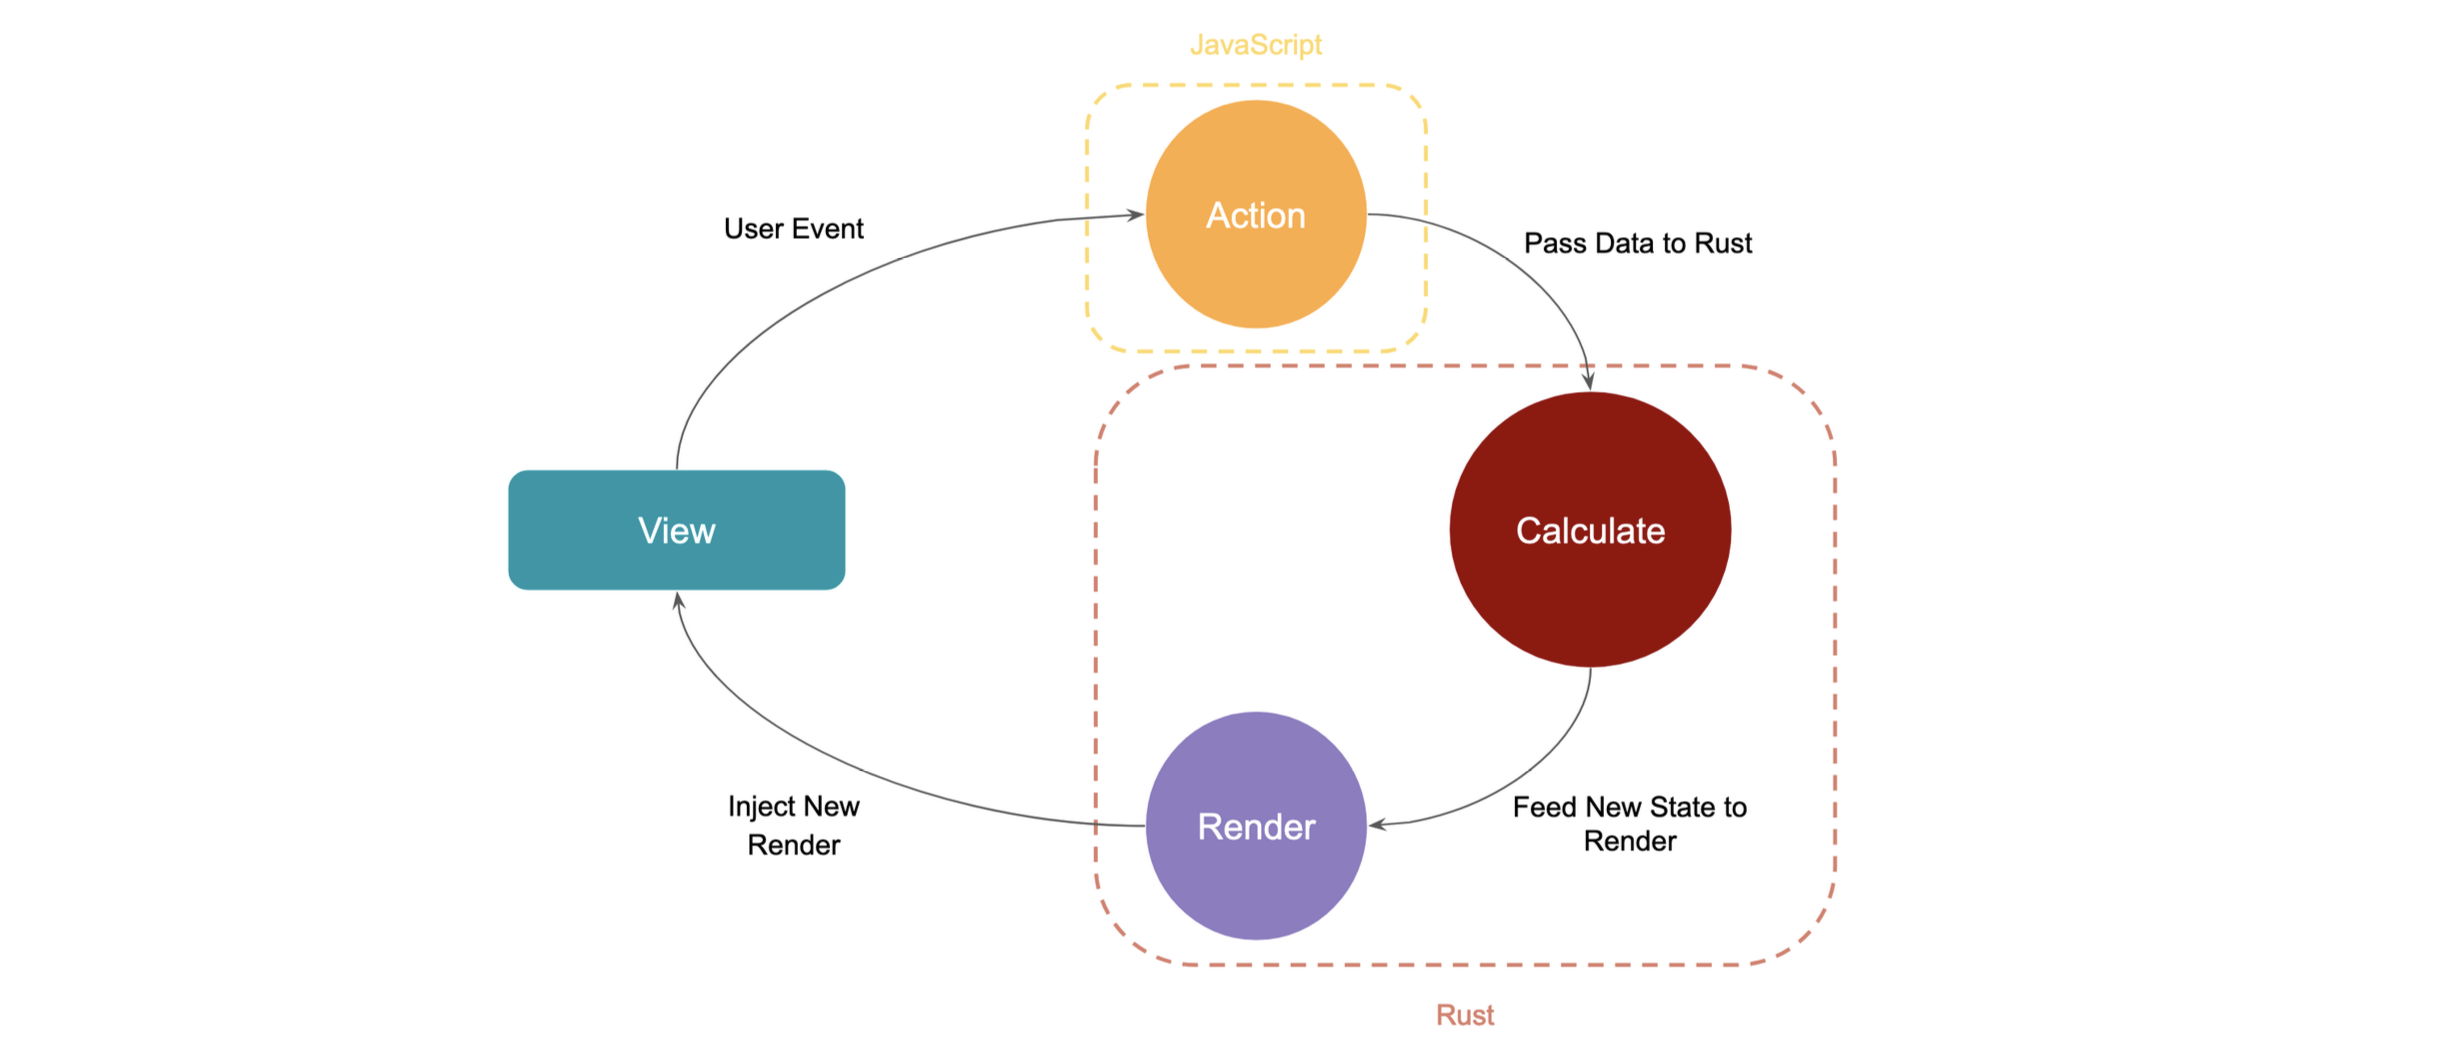 """Component lifecycle—Comprised of a """"view"""" node, pointing to and action node titled """"JavaScript"""" with an arrow titled """"user event."""" The action node points to a """"calculate"""" node with an arrow titled """"pass data to rust."""" The """"calculate"""" node points to a """"render"""" node, with an arrow titled """"feed new state to render."""" The render node points back to the """"view"""" node with an arrow titled """"inject new render"""""""